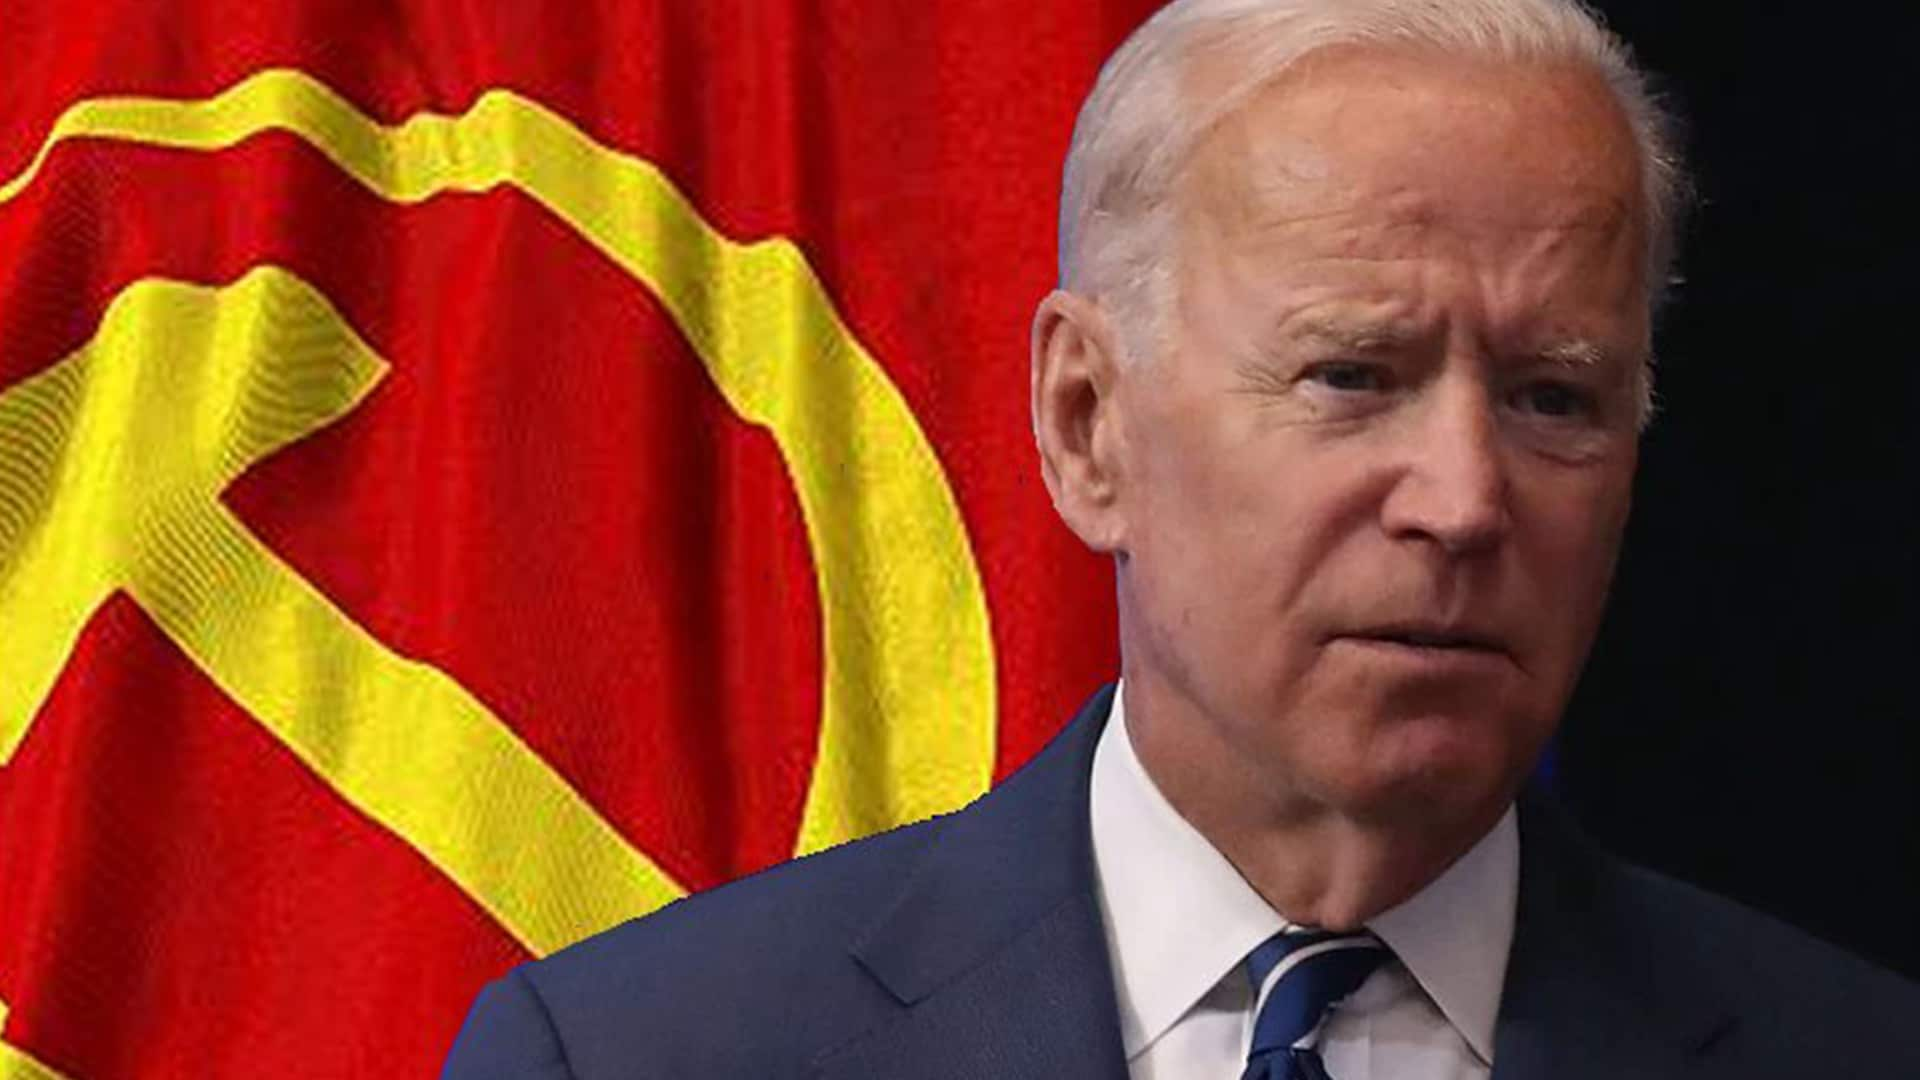 Biden Commies